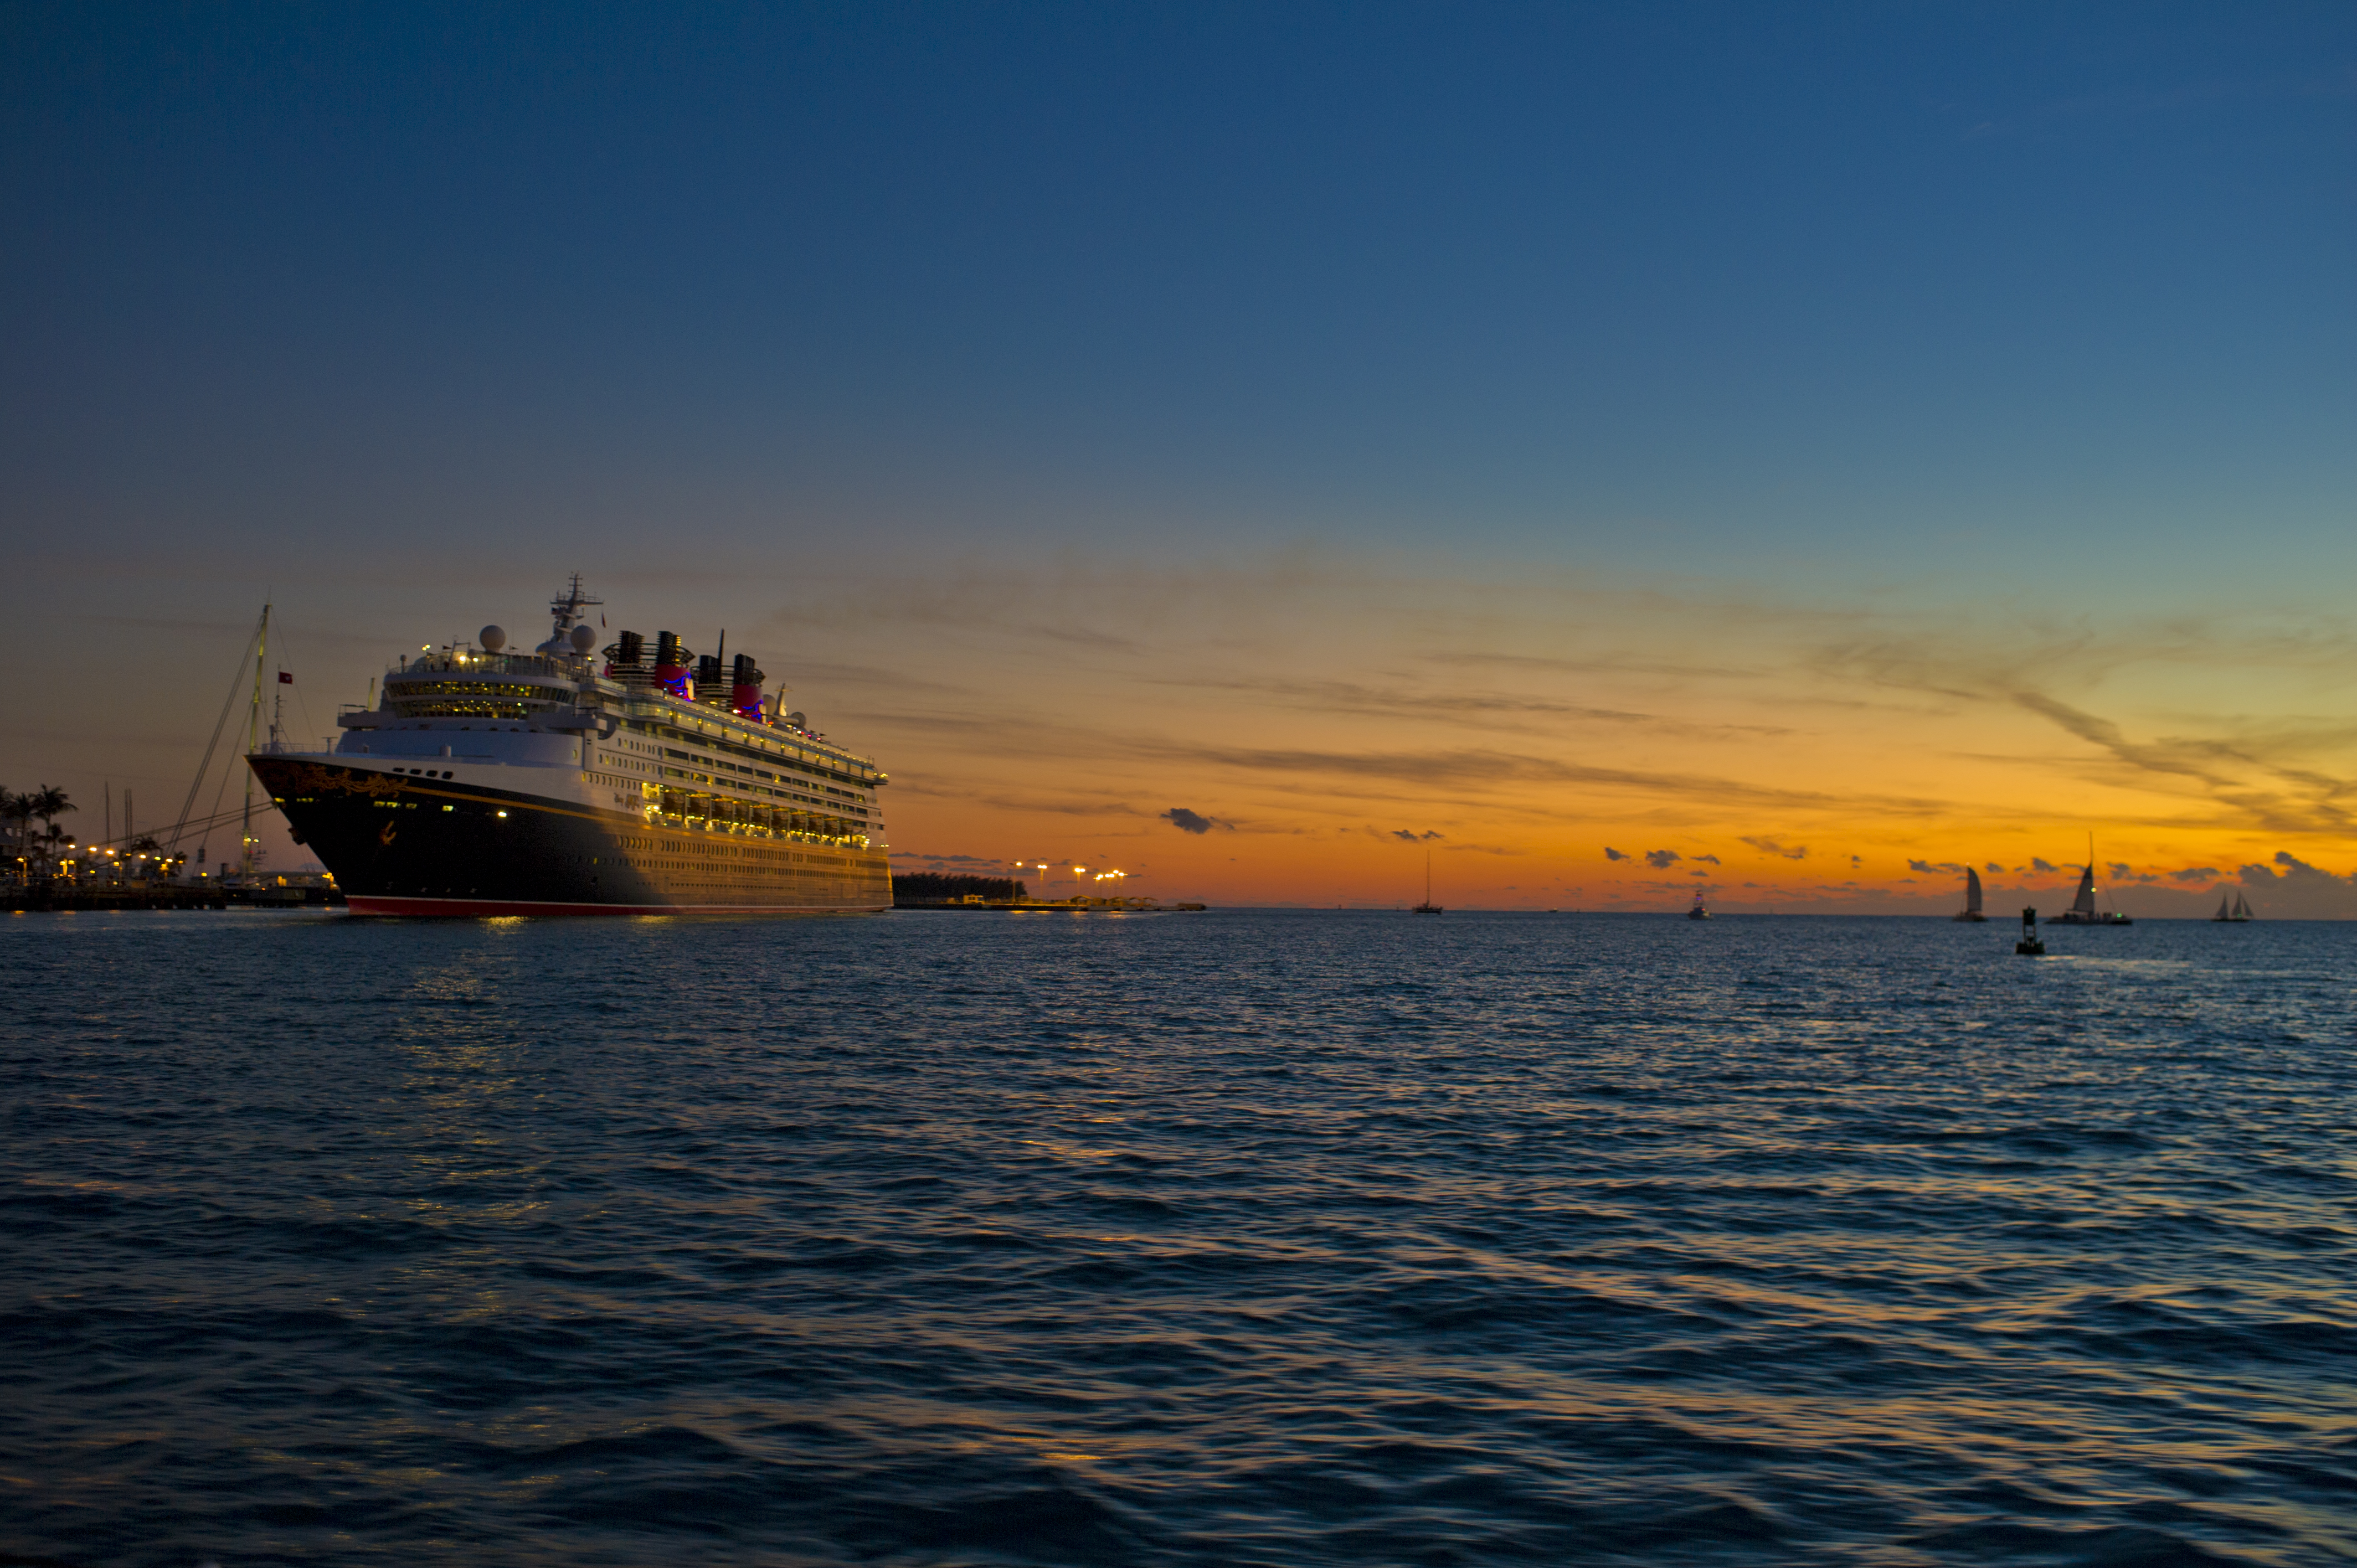 A Key West Guide For Cruise Ship Passengers The Key Wester A - Key west cruise ship calendar